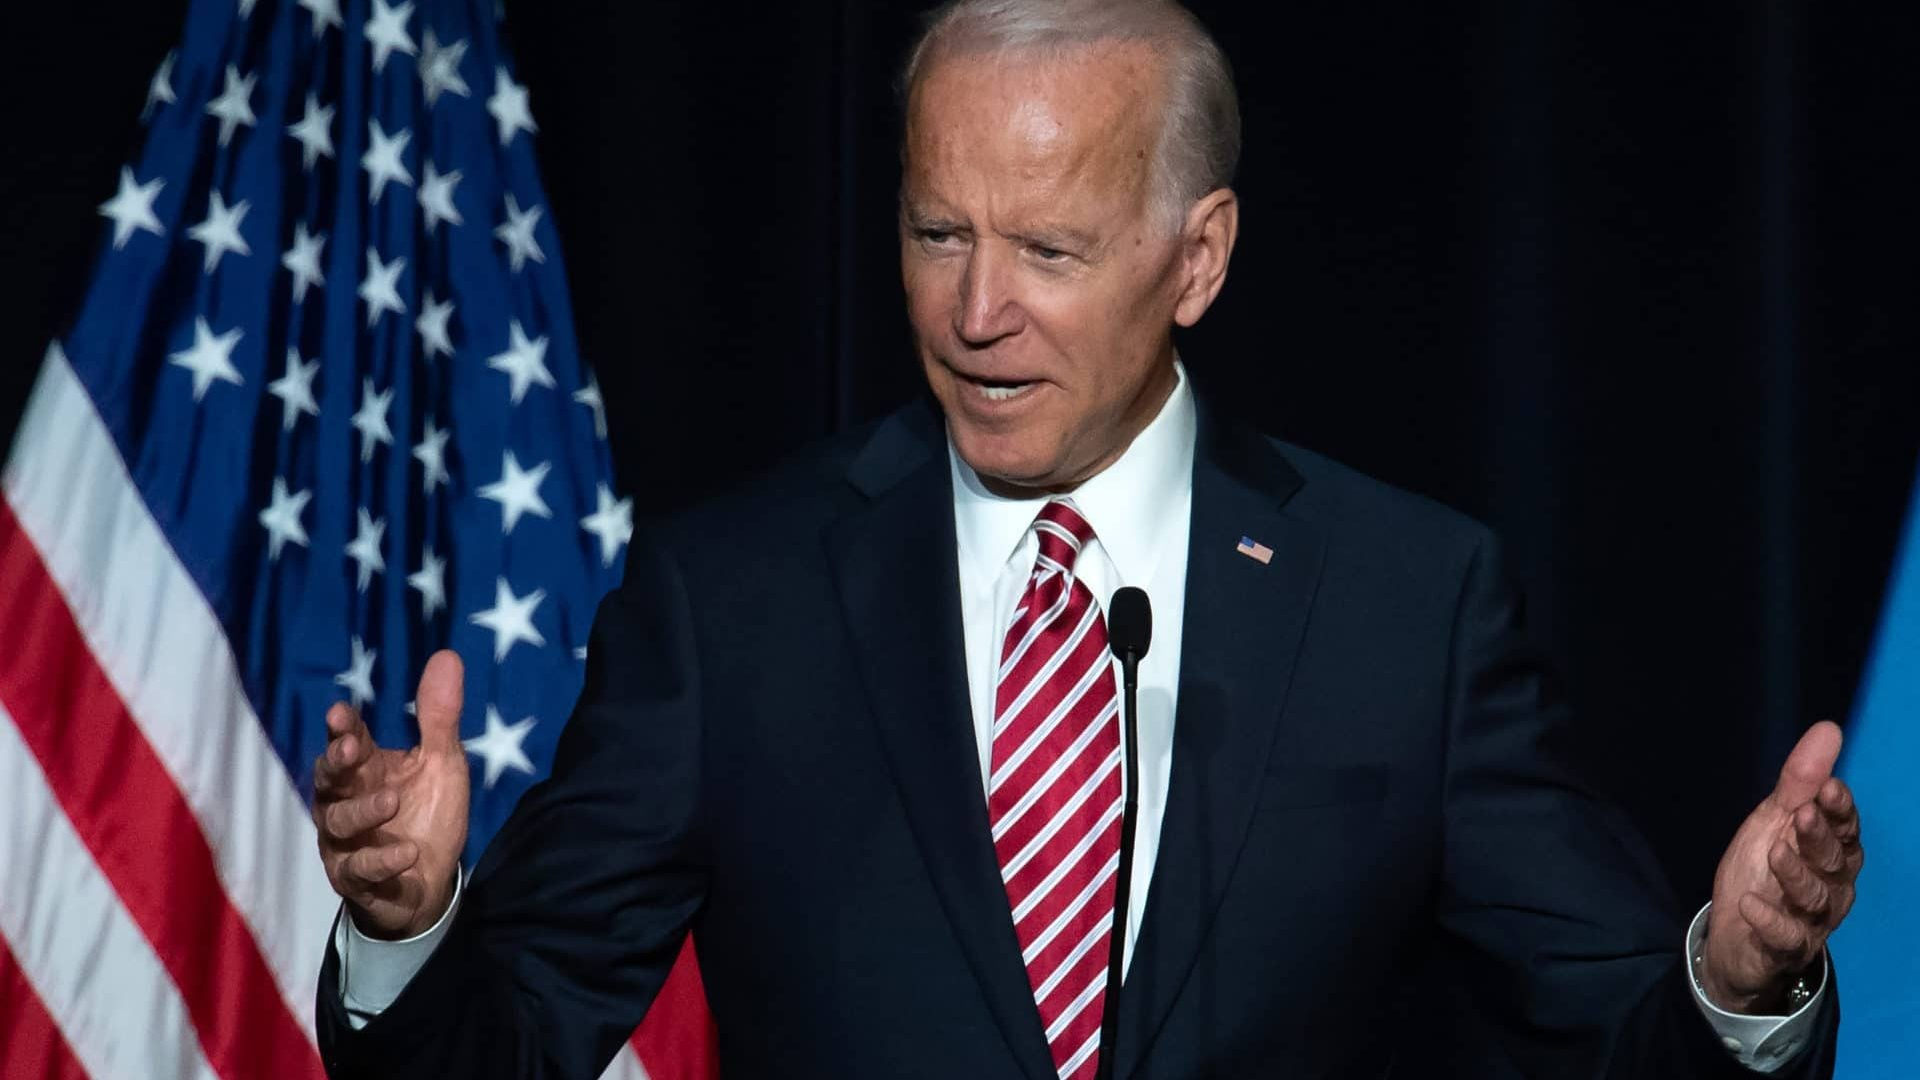 New Poll Says 47 Percent Of Black Women Would Vote For Joe Biden